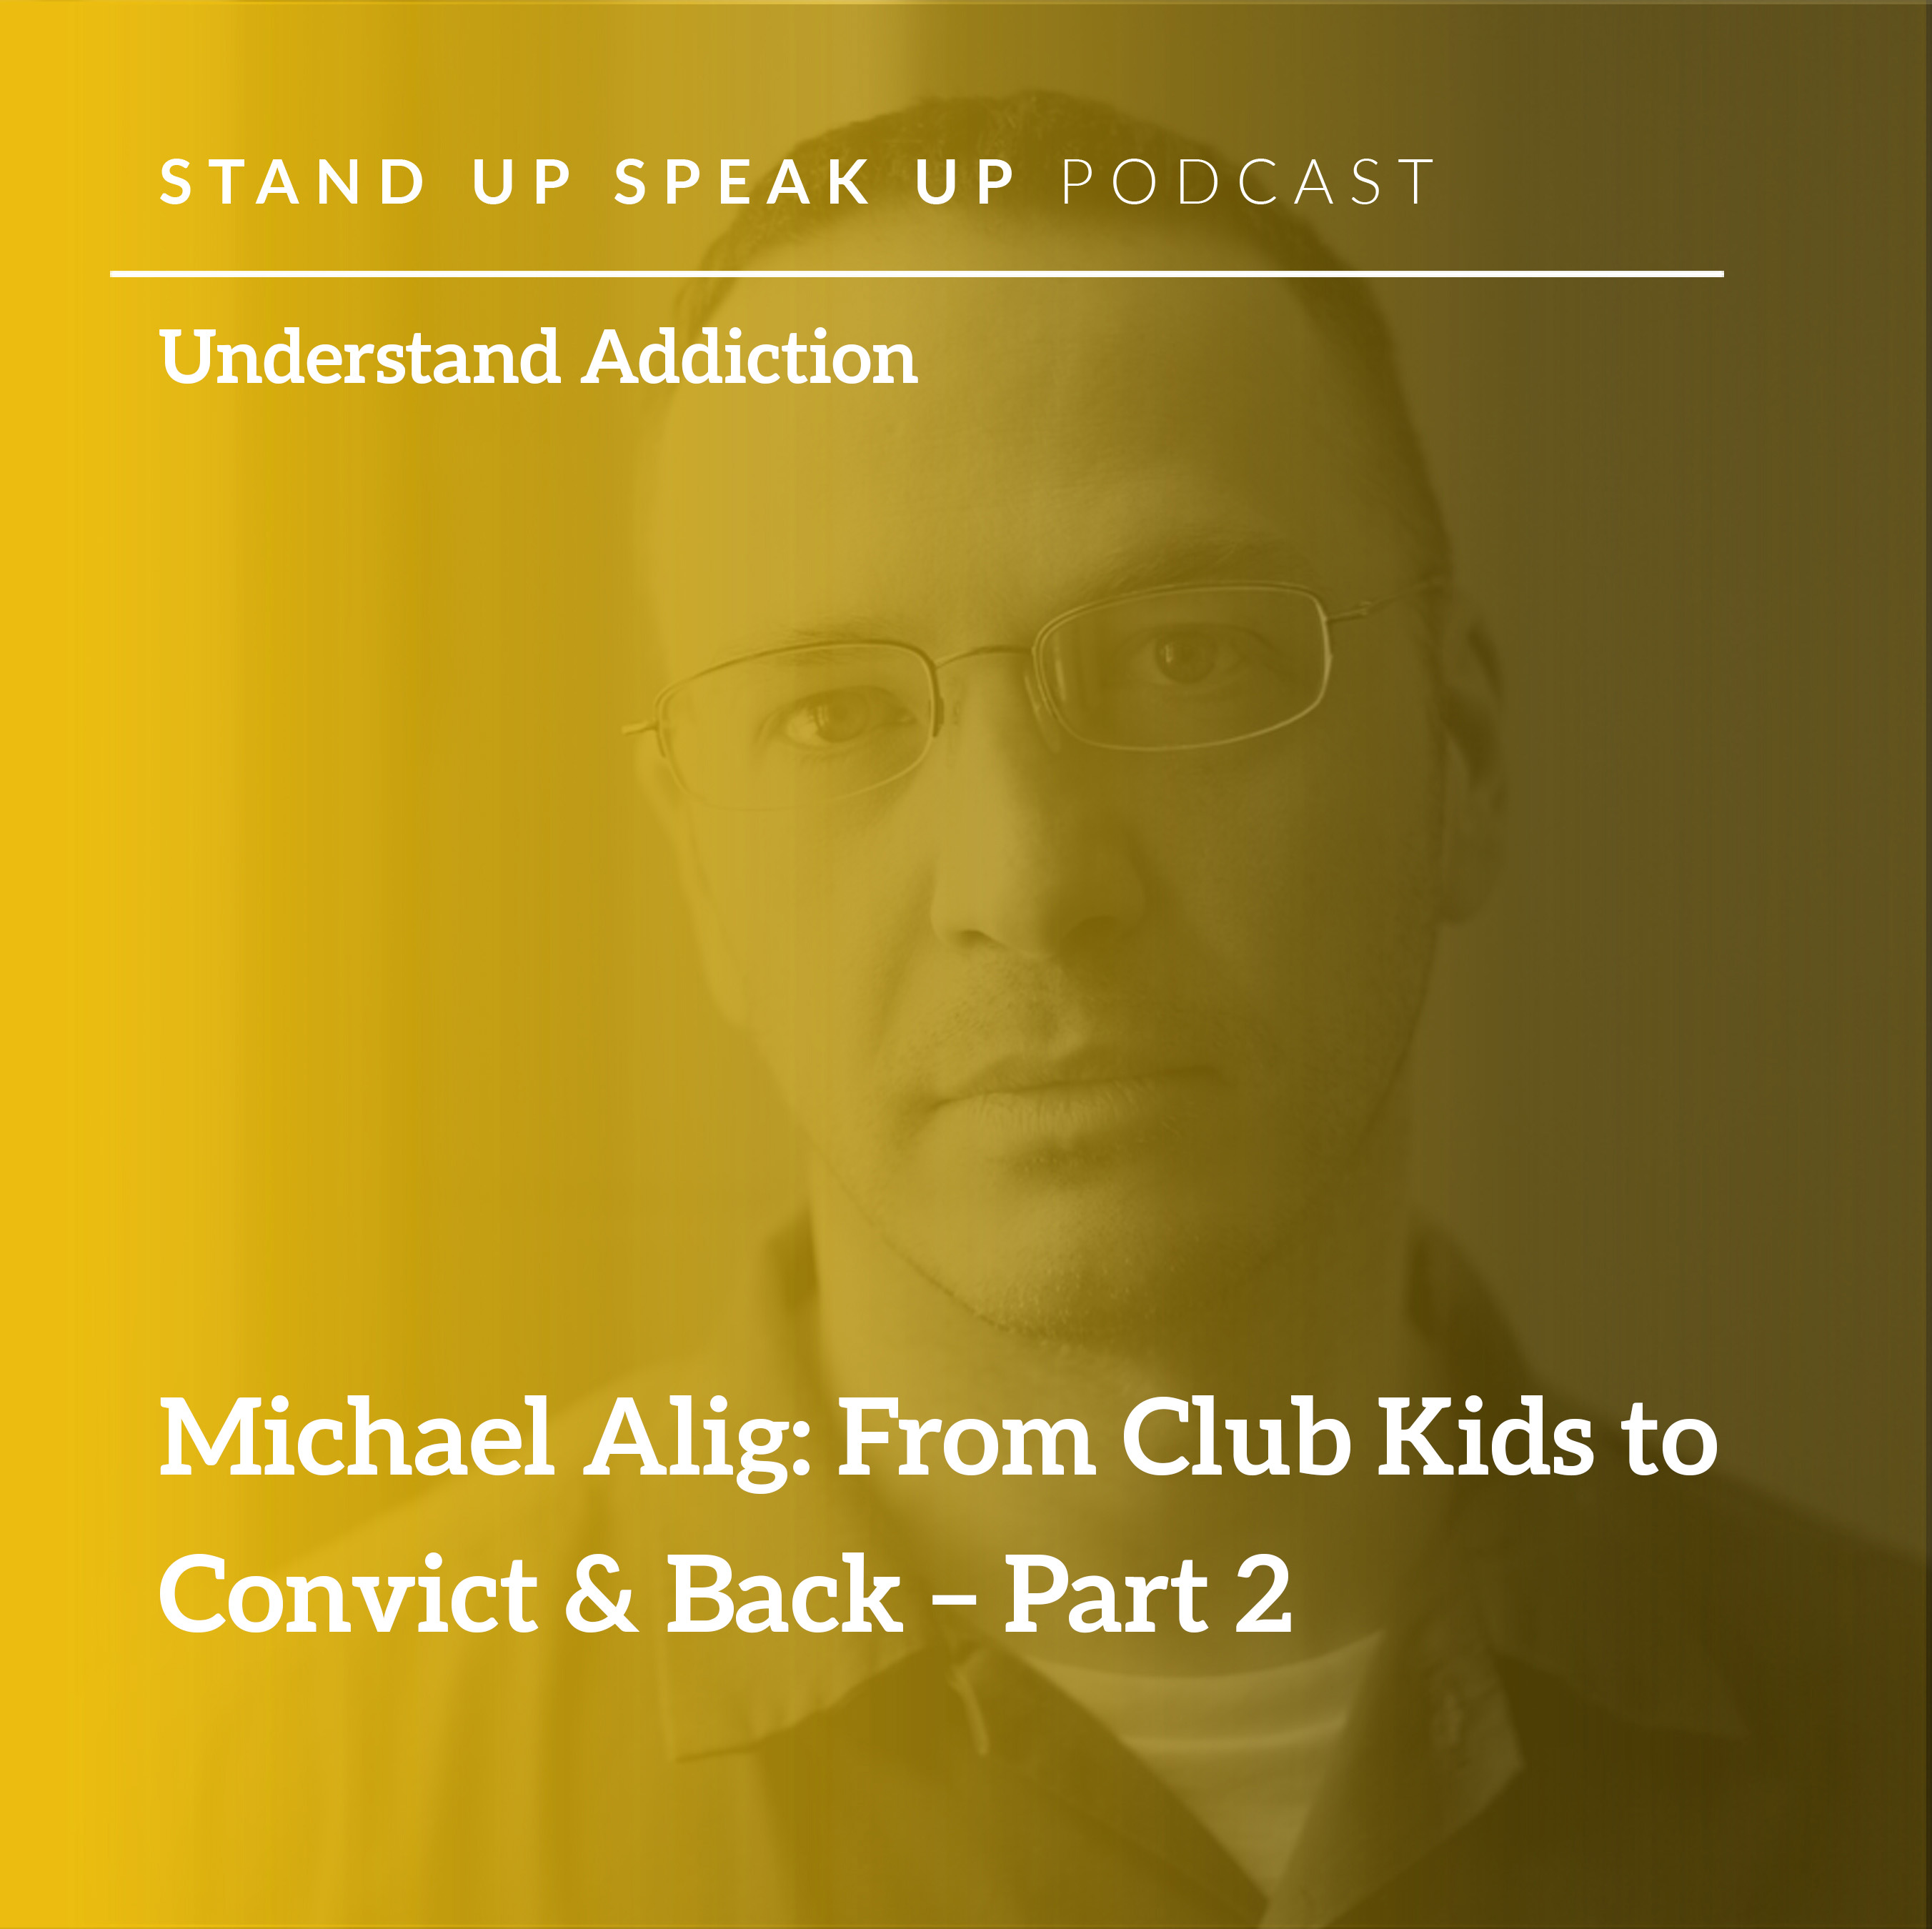 Episode 58:  Michael Alig: From Club Kids to Convict & Back – Part 2